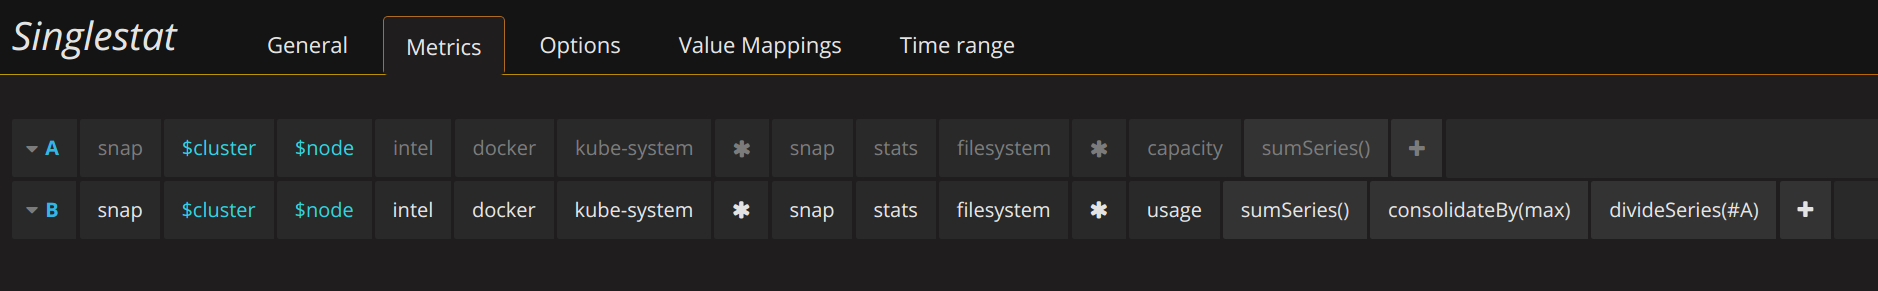 Graphite and Grafana – How to calculate Percentage of Total/Percent